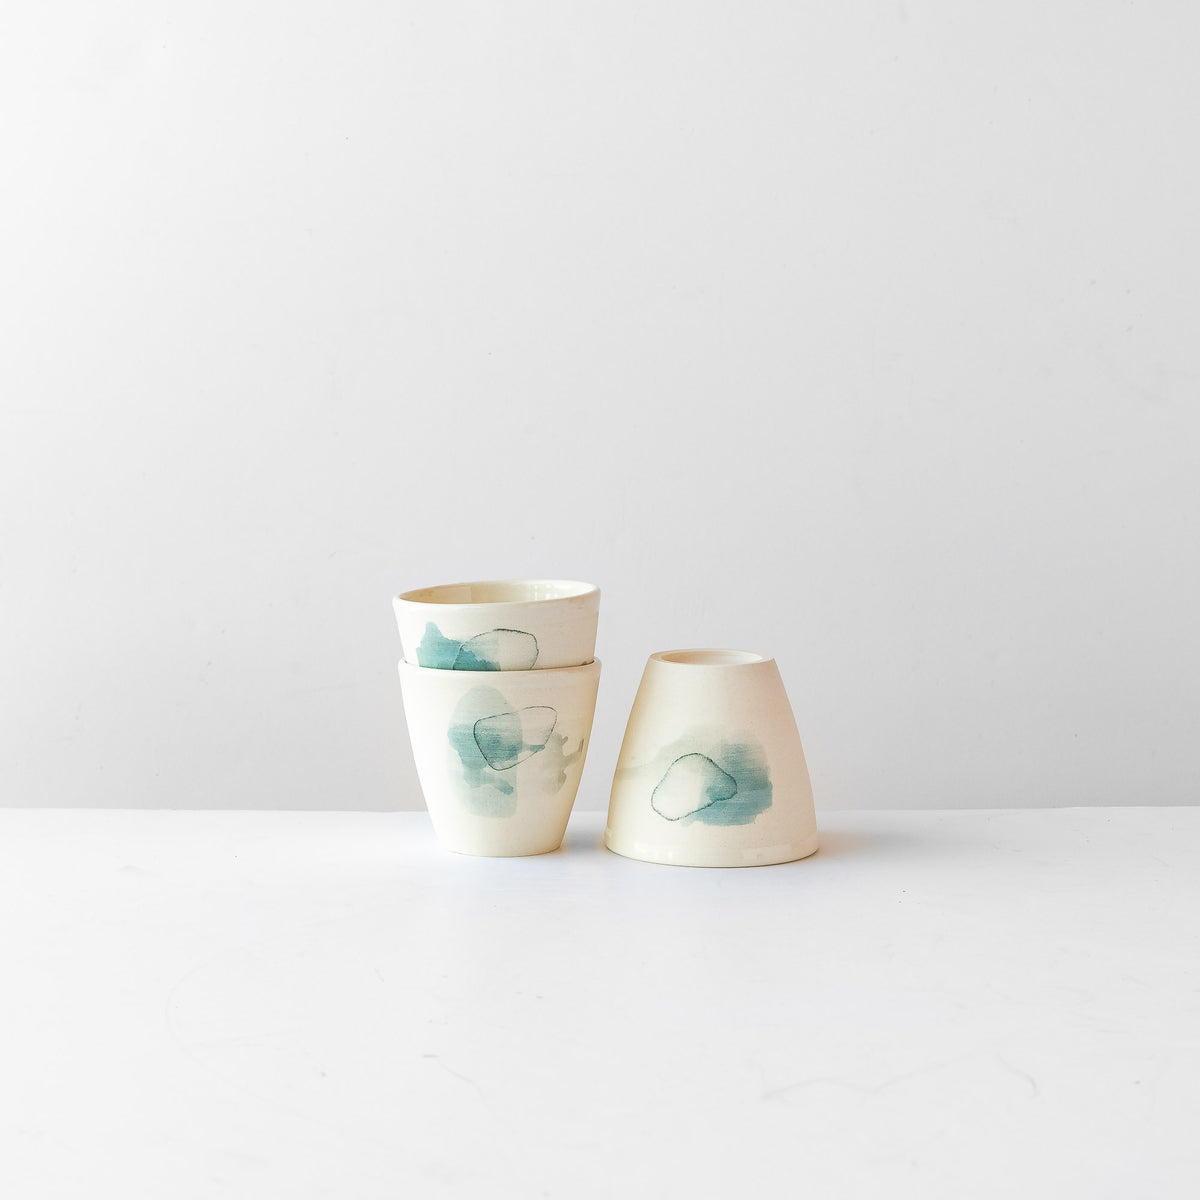 Three Hand Painted Porcelain Tumblers with Blue Pattern - Sold by Chic & Basta